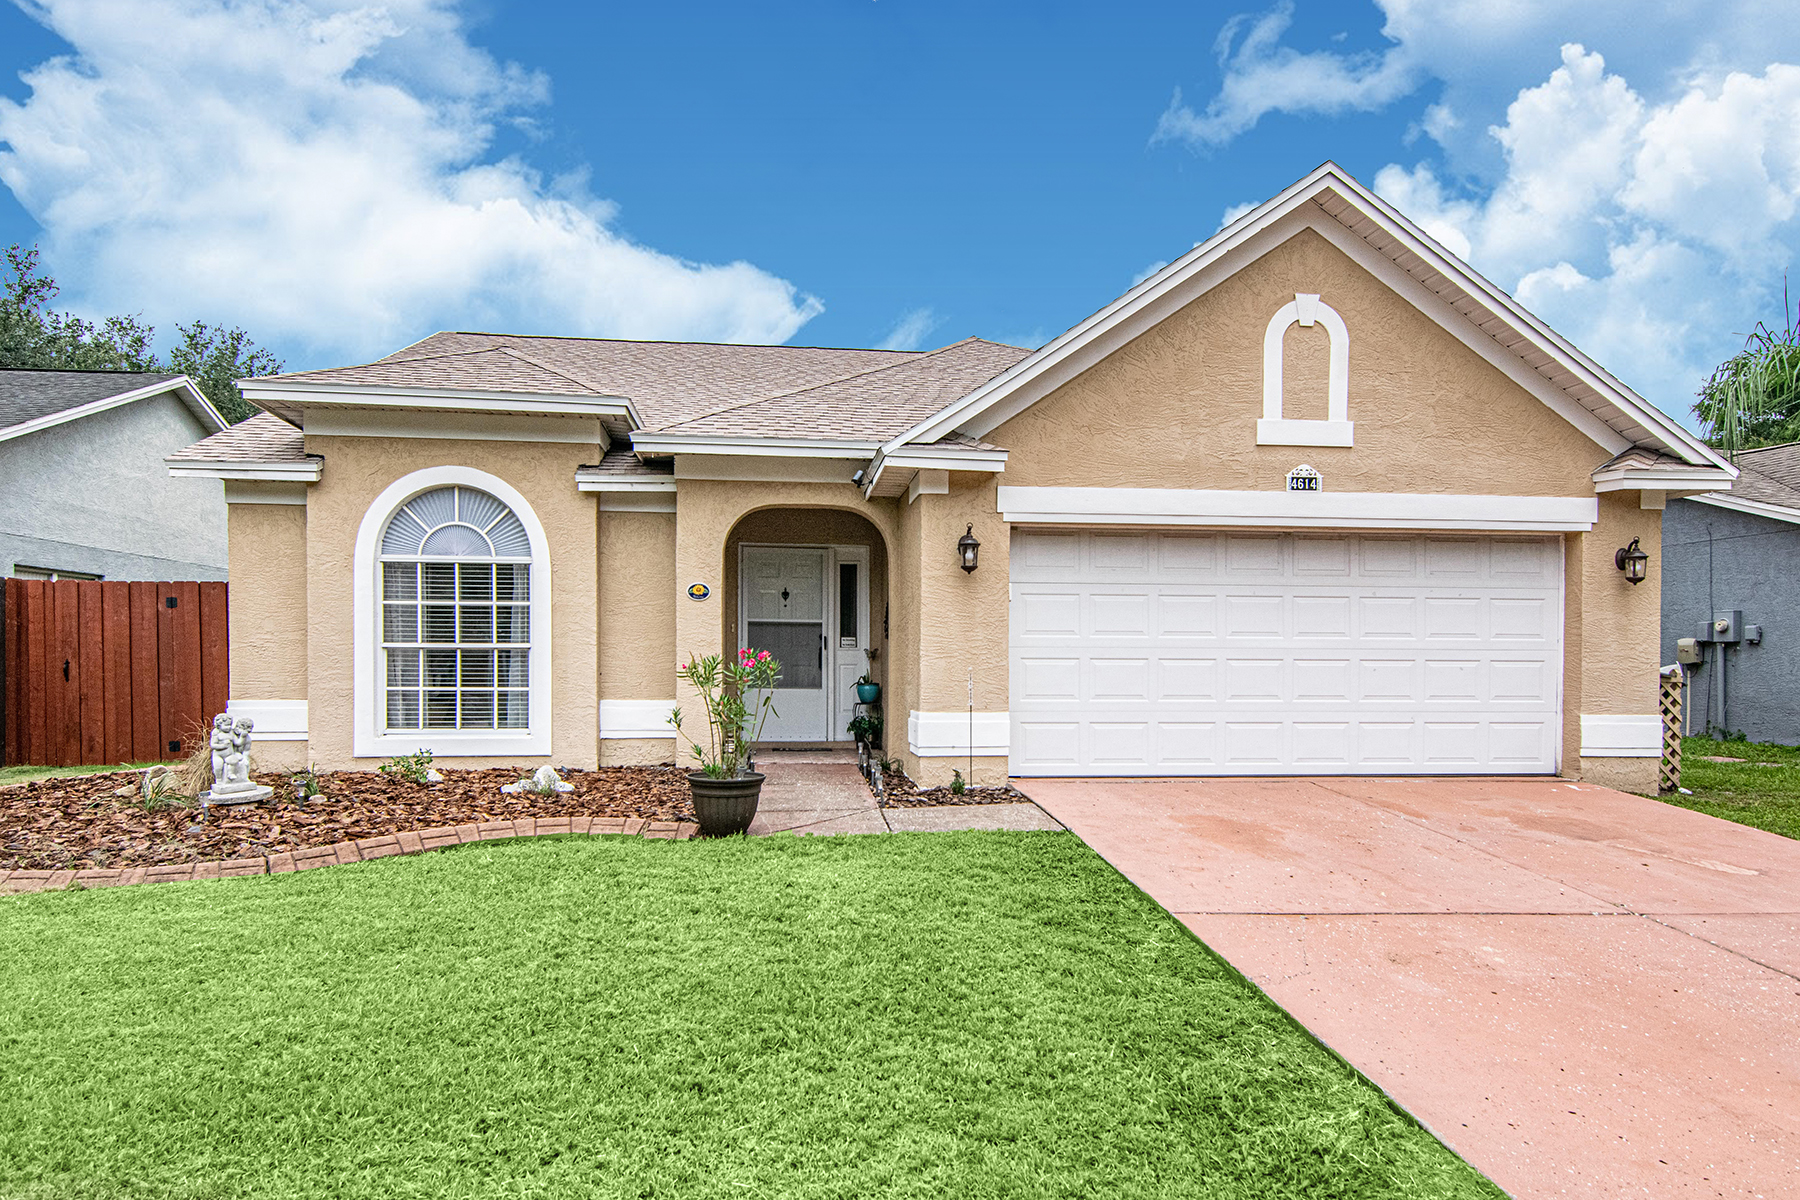 Single Family Homes for Active at VALRICO 4614 Lighterwood Way Valrico, Florida 33596 United States